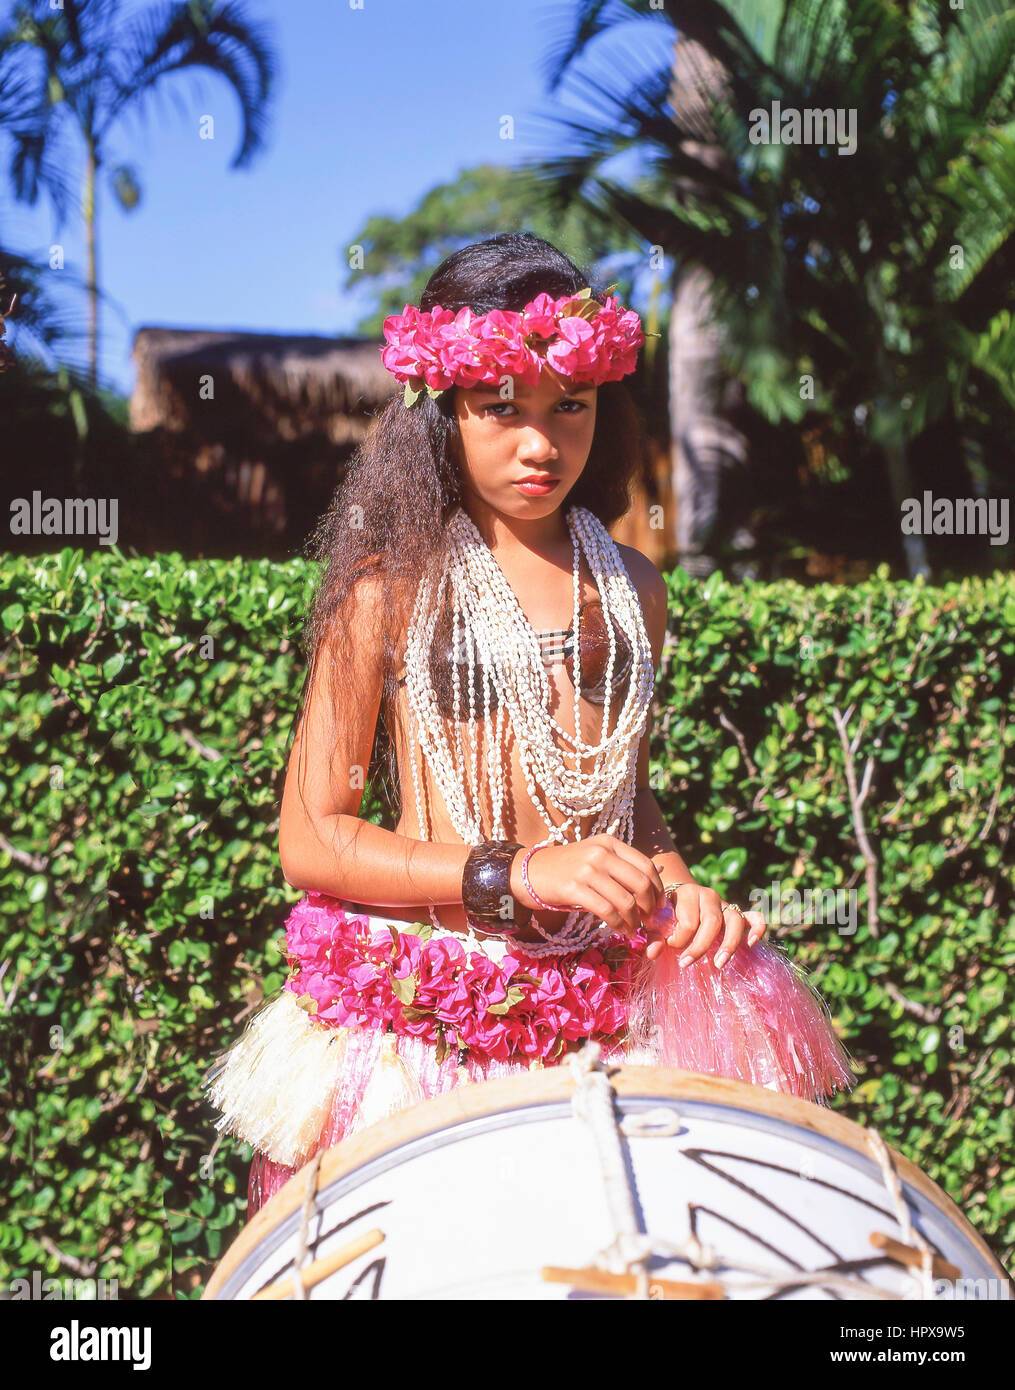 Young female Hawaiian dancer, Kodak Hula Show, Honolulu, Oahu, Hawaii, United States of America - Stock Image